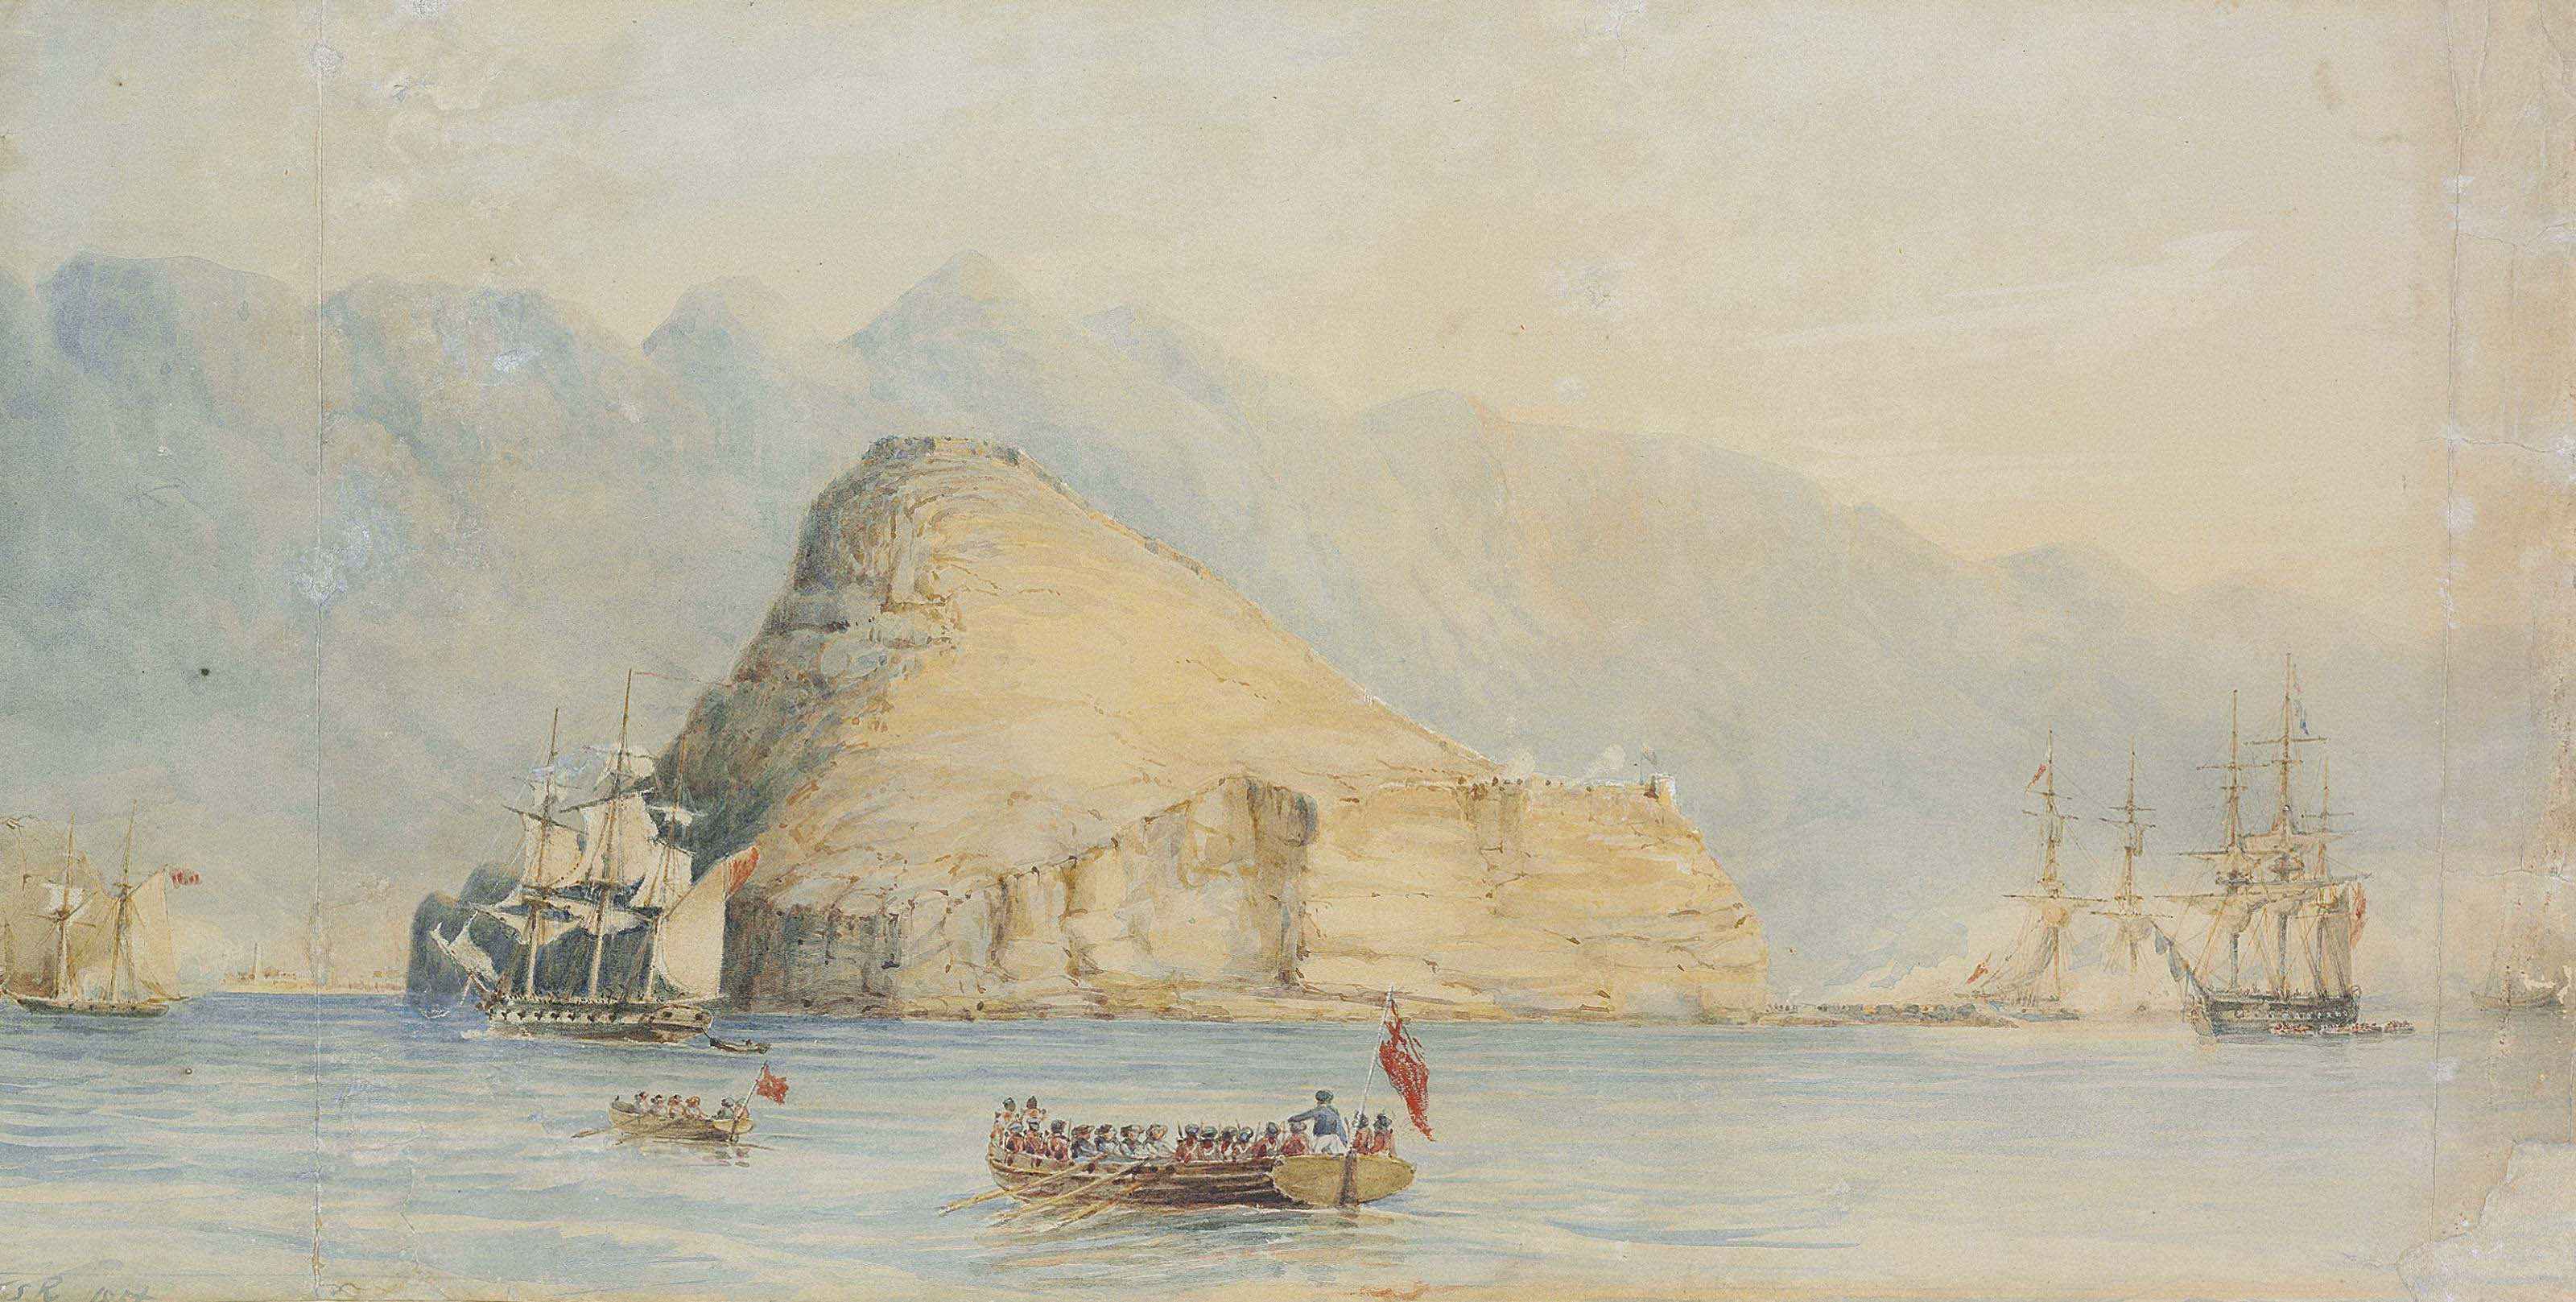 Ships of war manoeuvring for the attack on Aden, 17 January 1839; and Preparing for the attack on Aden, 18 January 1839